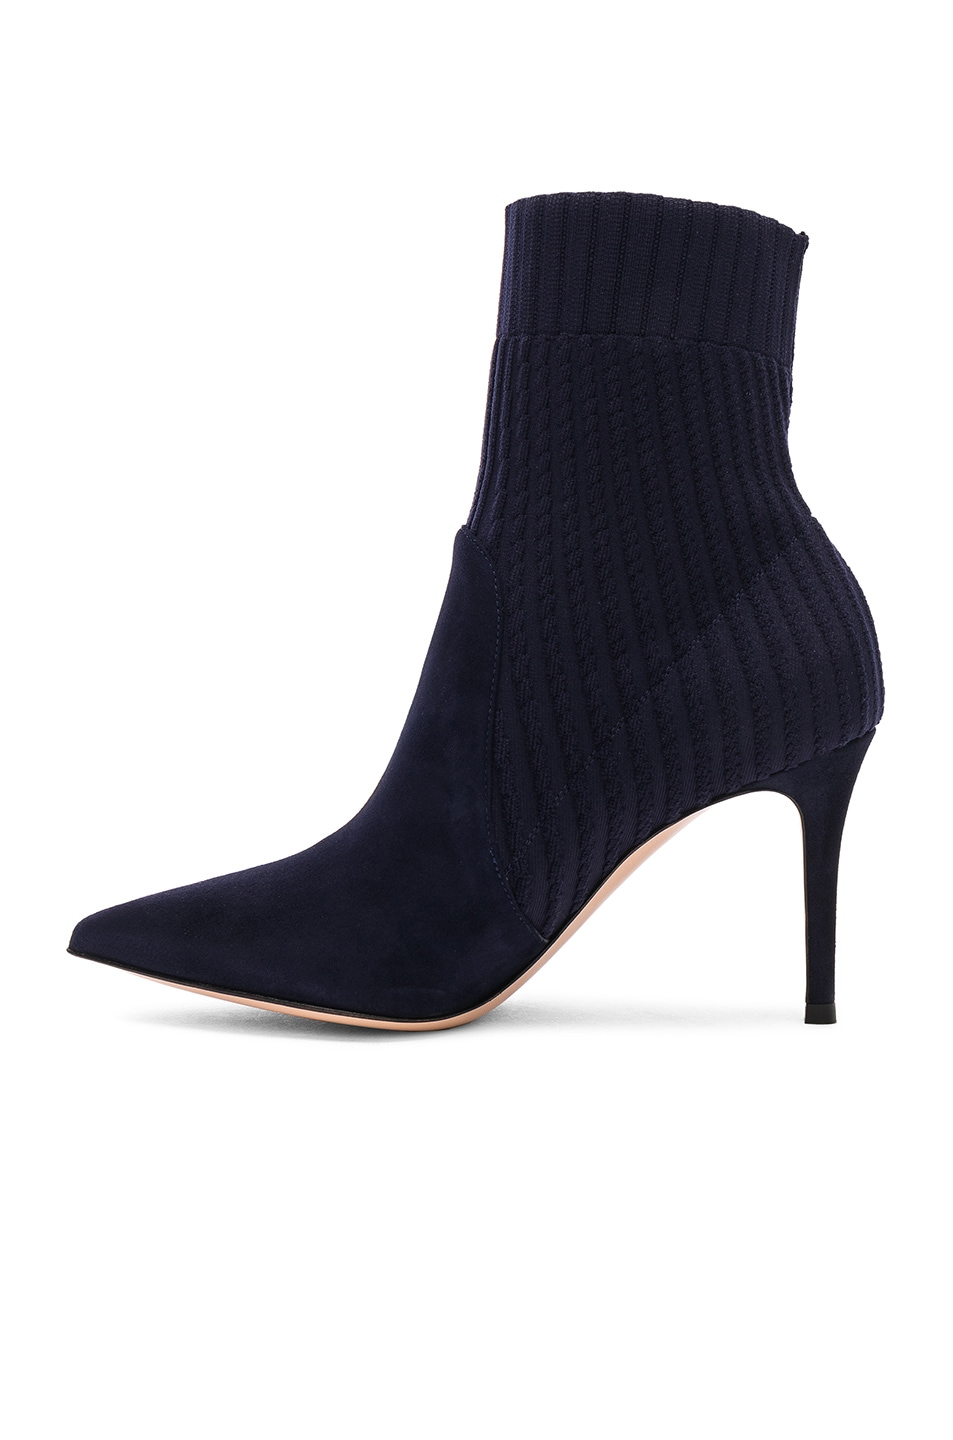 Image 5 of Gianvito Rossi Suede & Knit Katie Ankle Boots in Denim